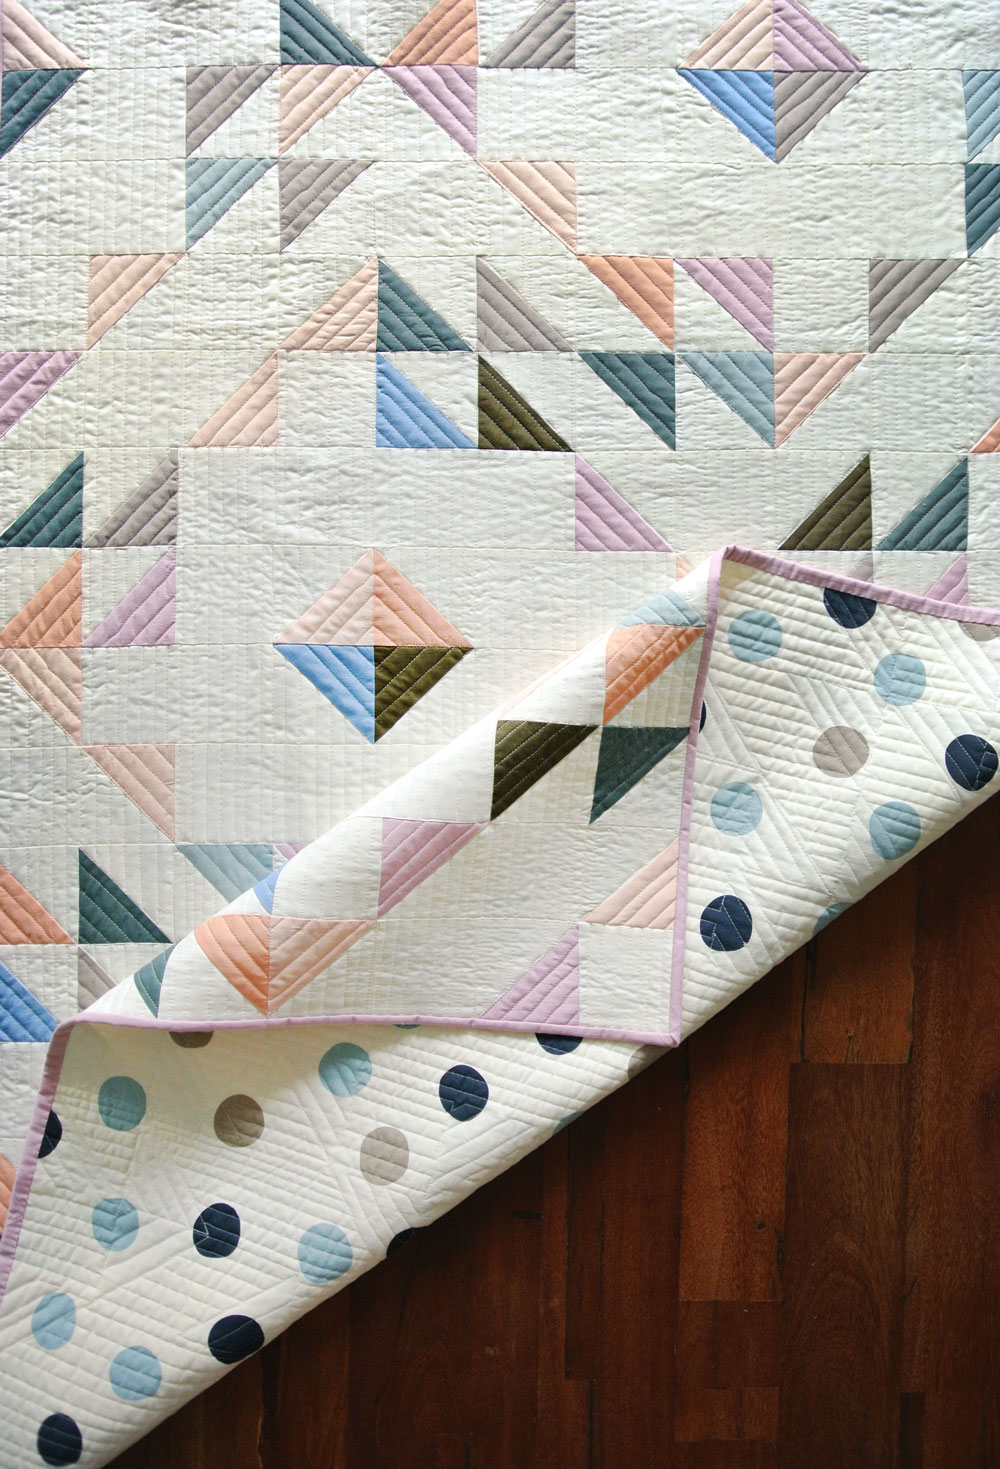 Learn the 6 simple steps to straight line quilting, or as some call it, matchstick quilting. This is a great beginner quilter tutorial!